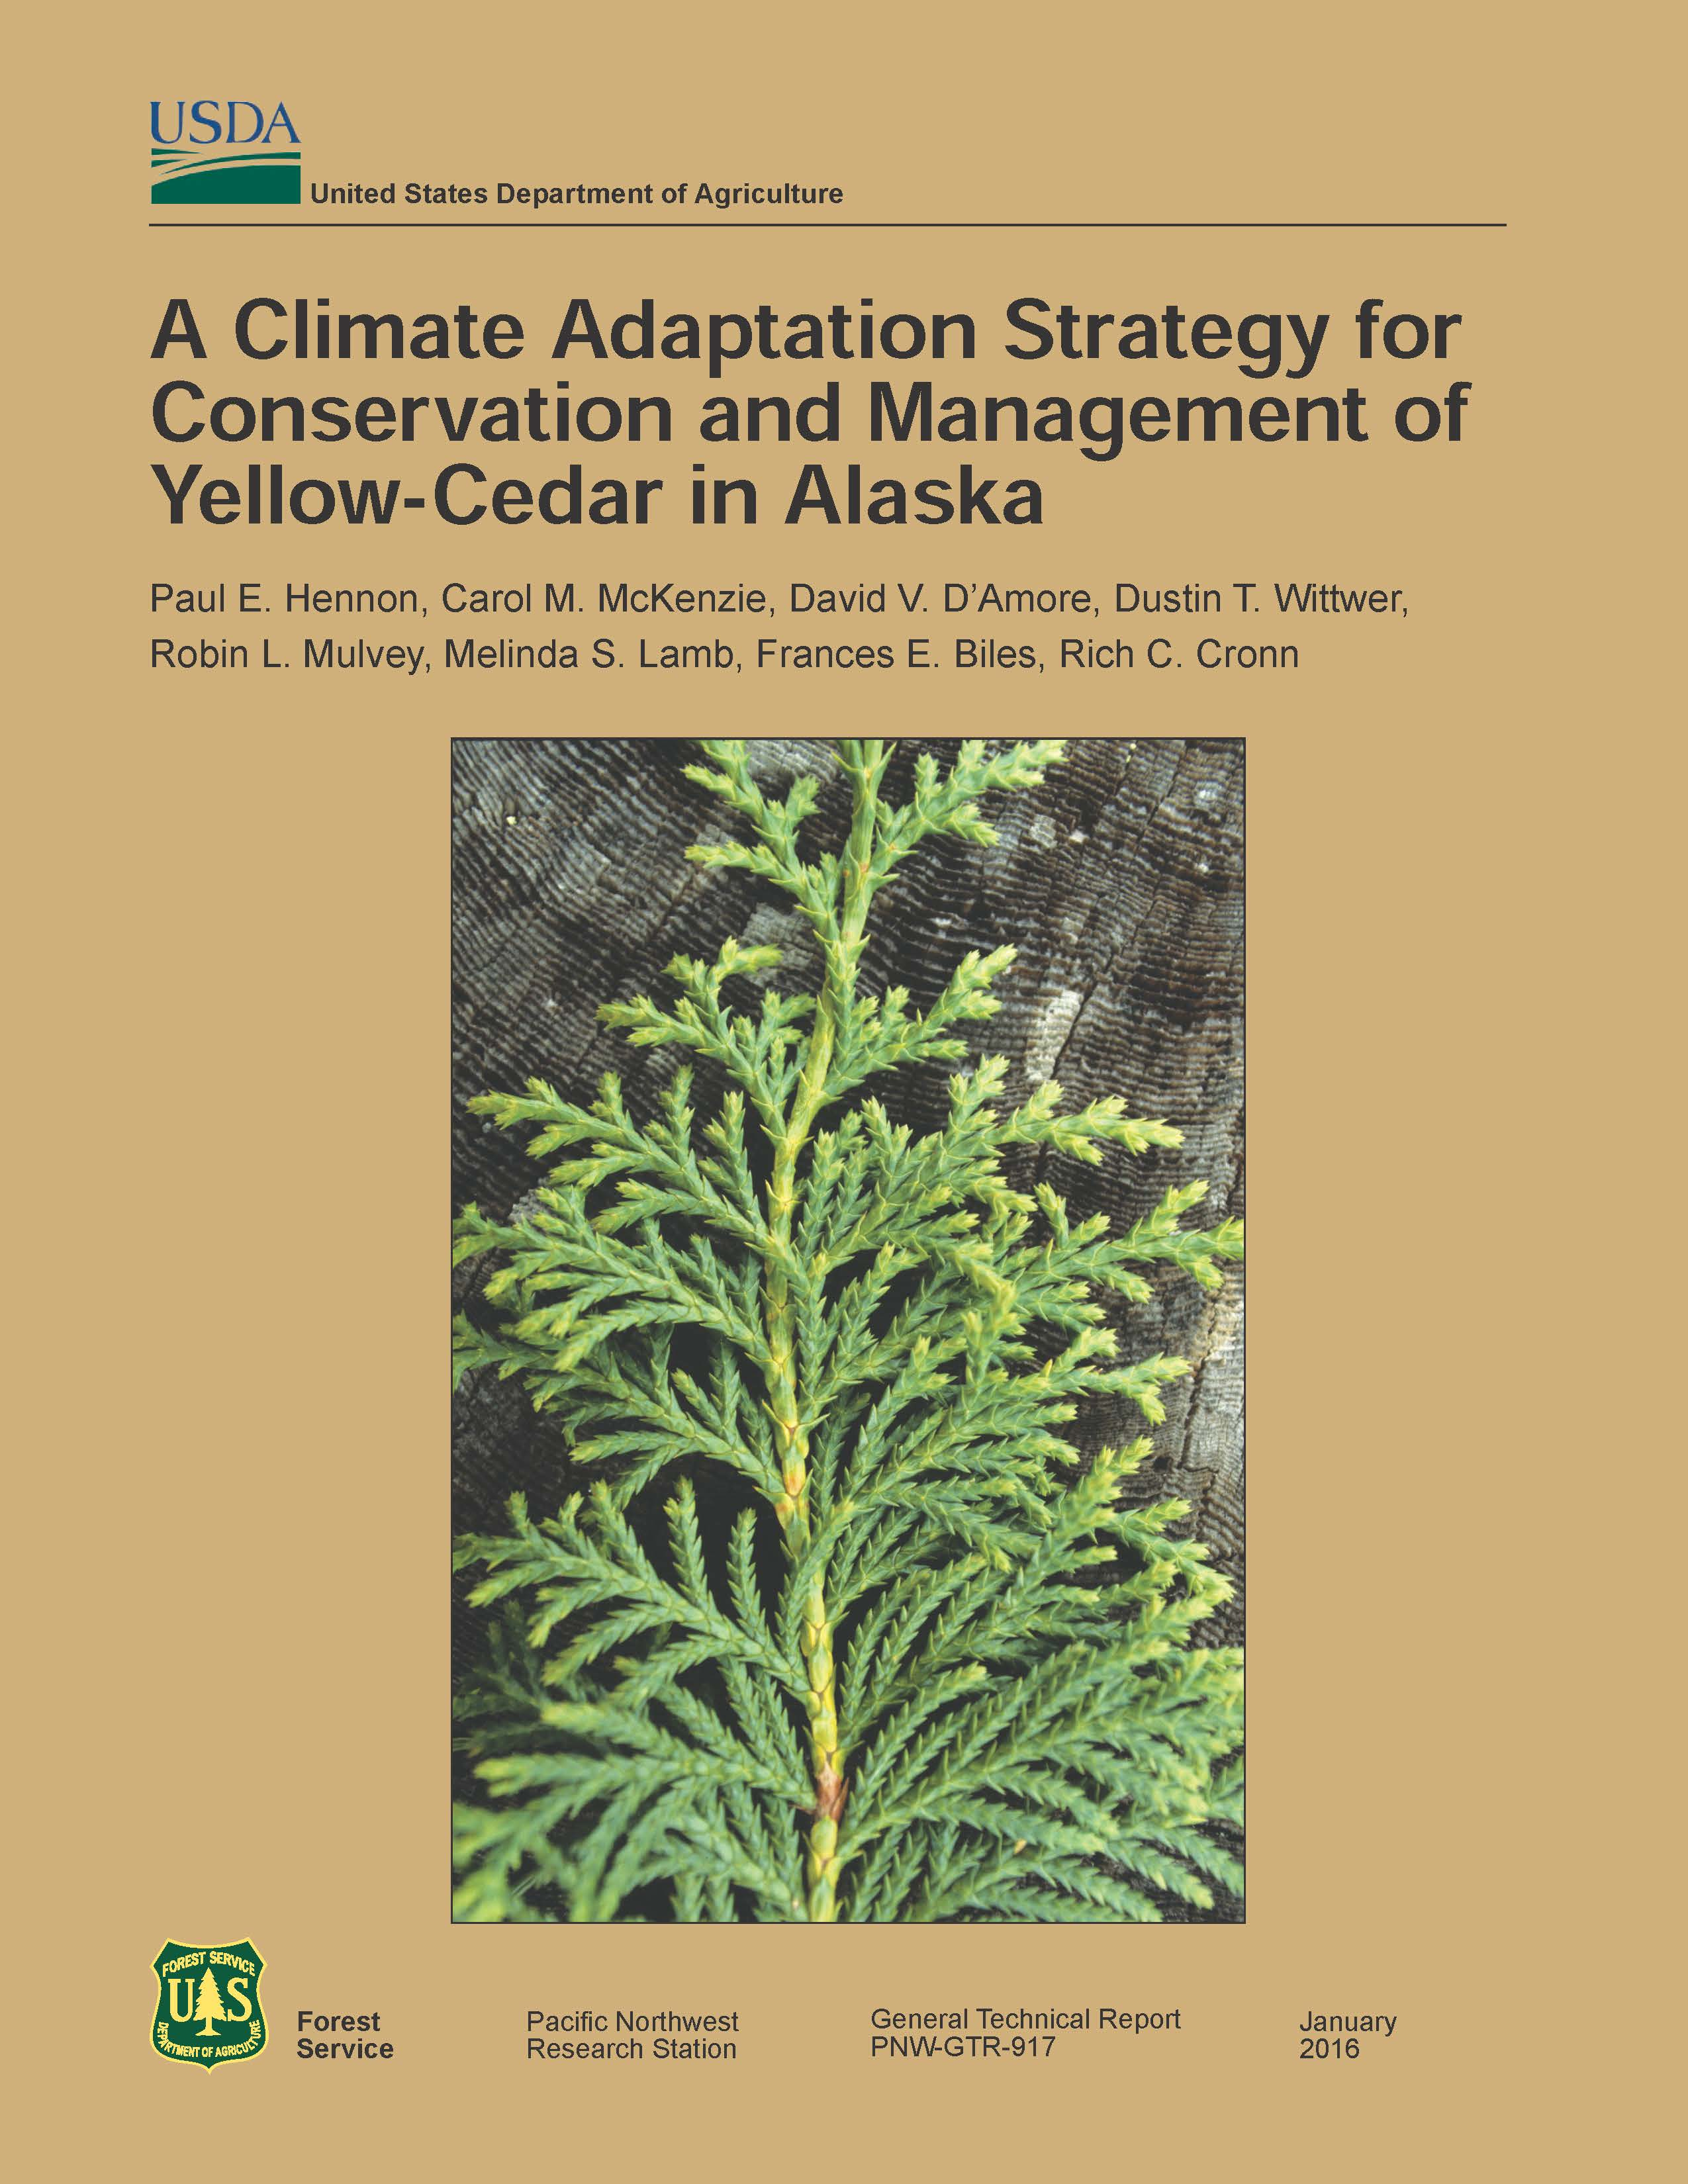 yellow-cedar strategy cover